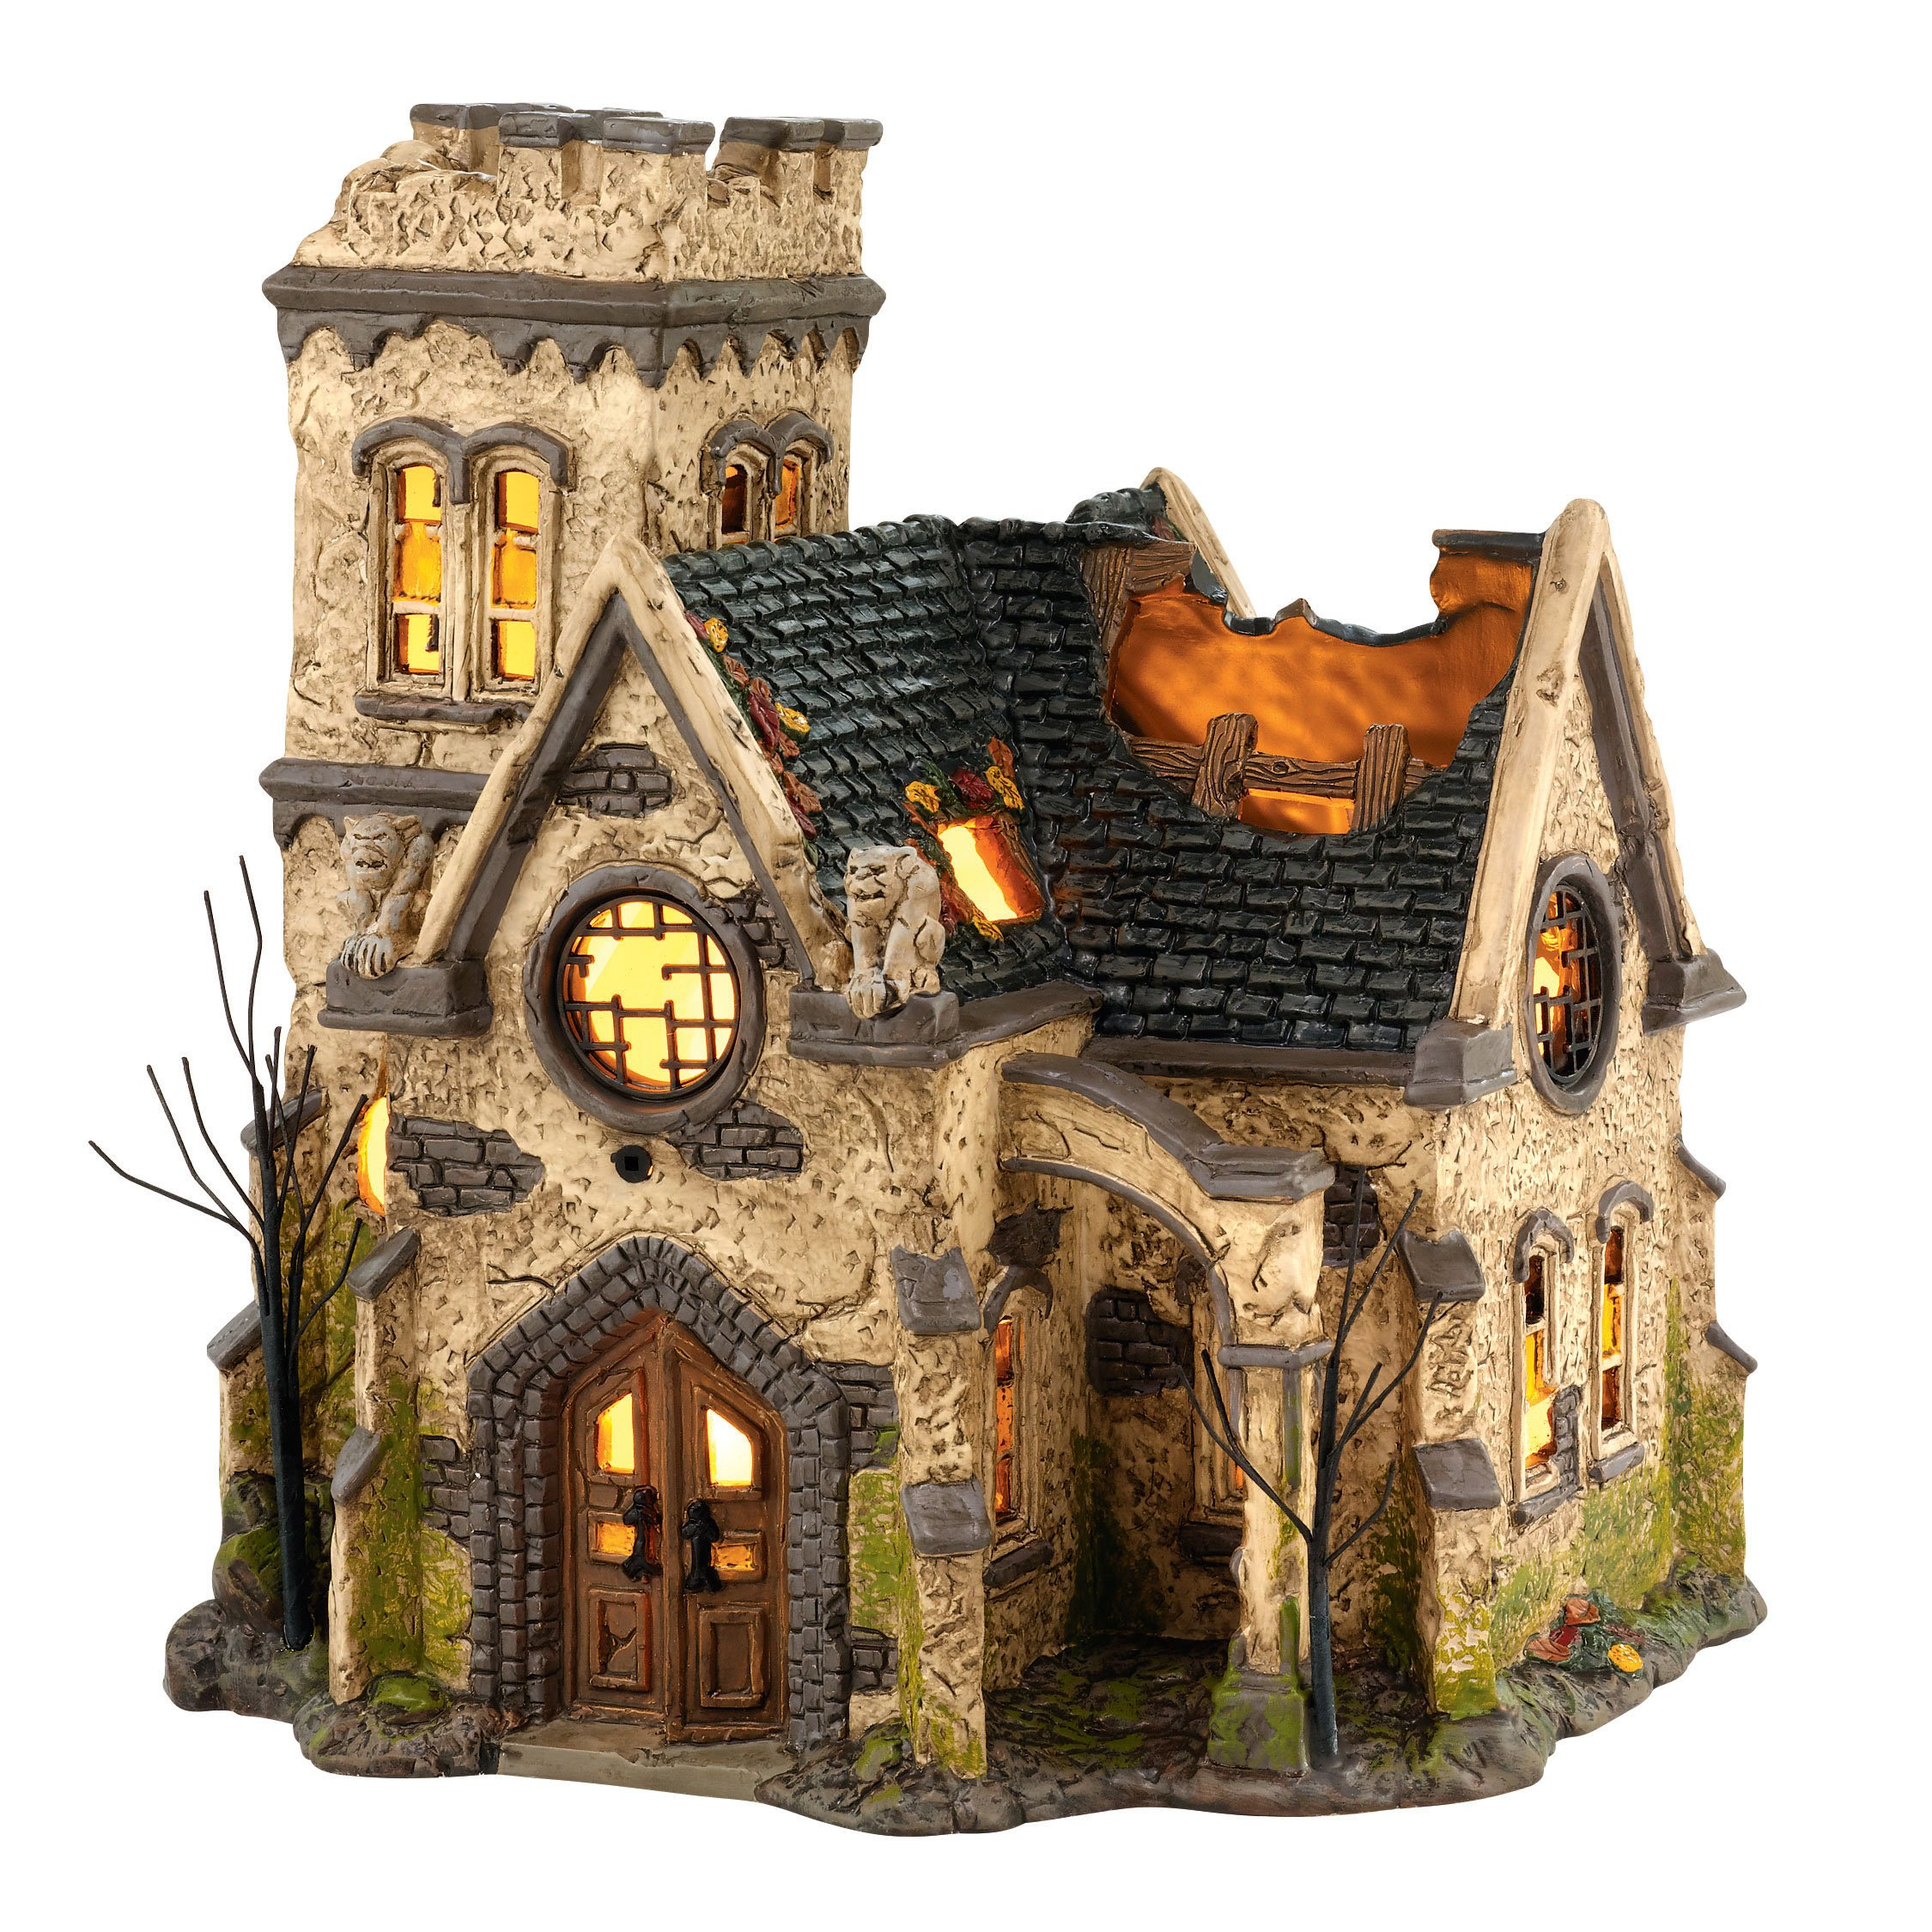 Department 56 4036592 Snow Village Halloween The Haunted Lit House, 9.06 inch by Department 56